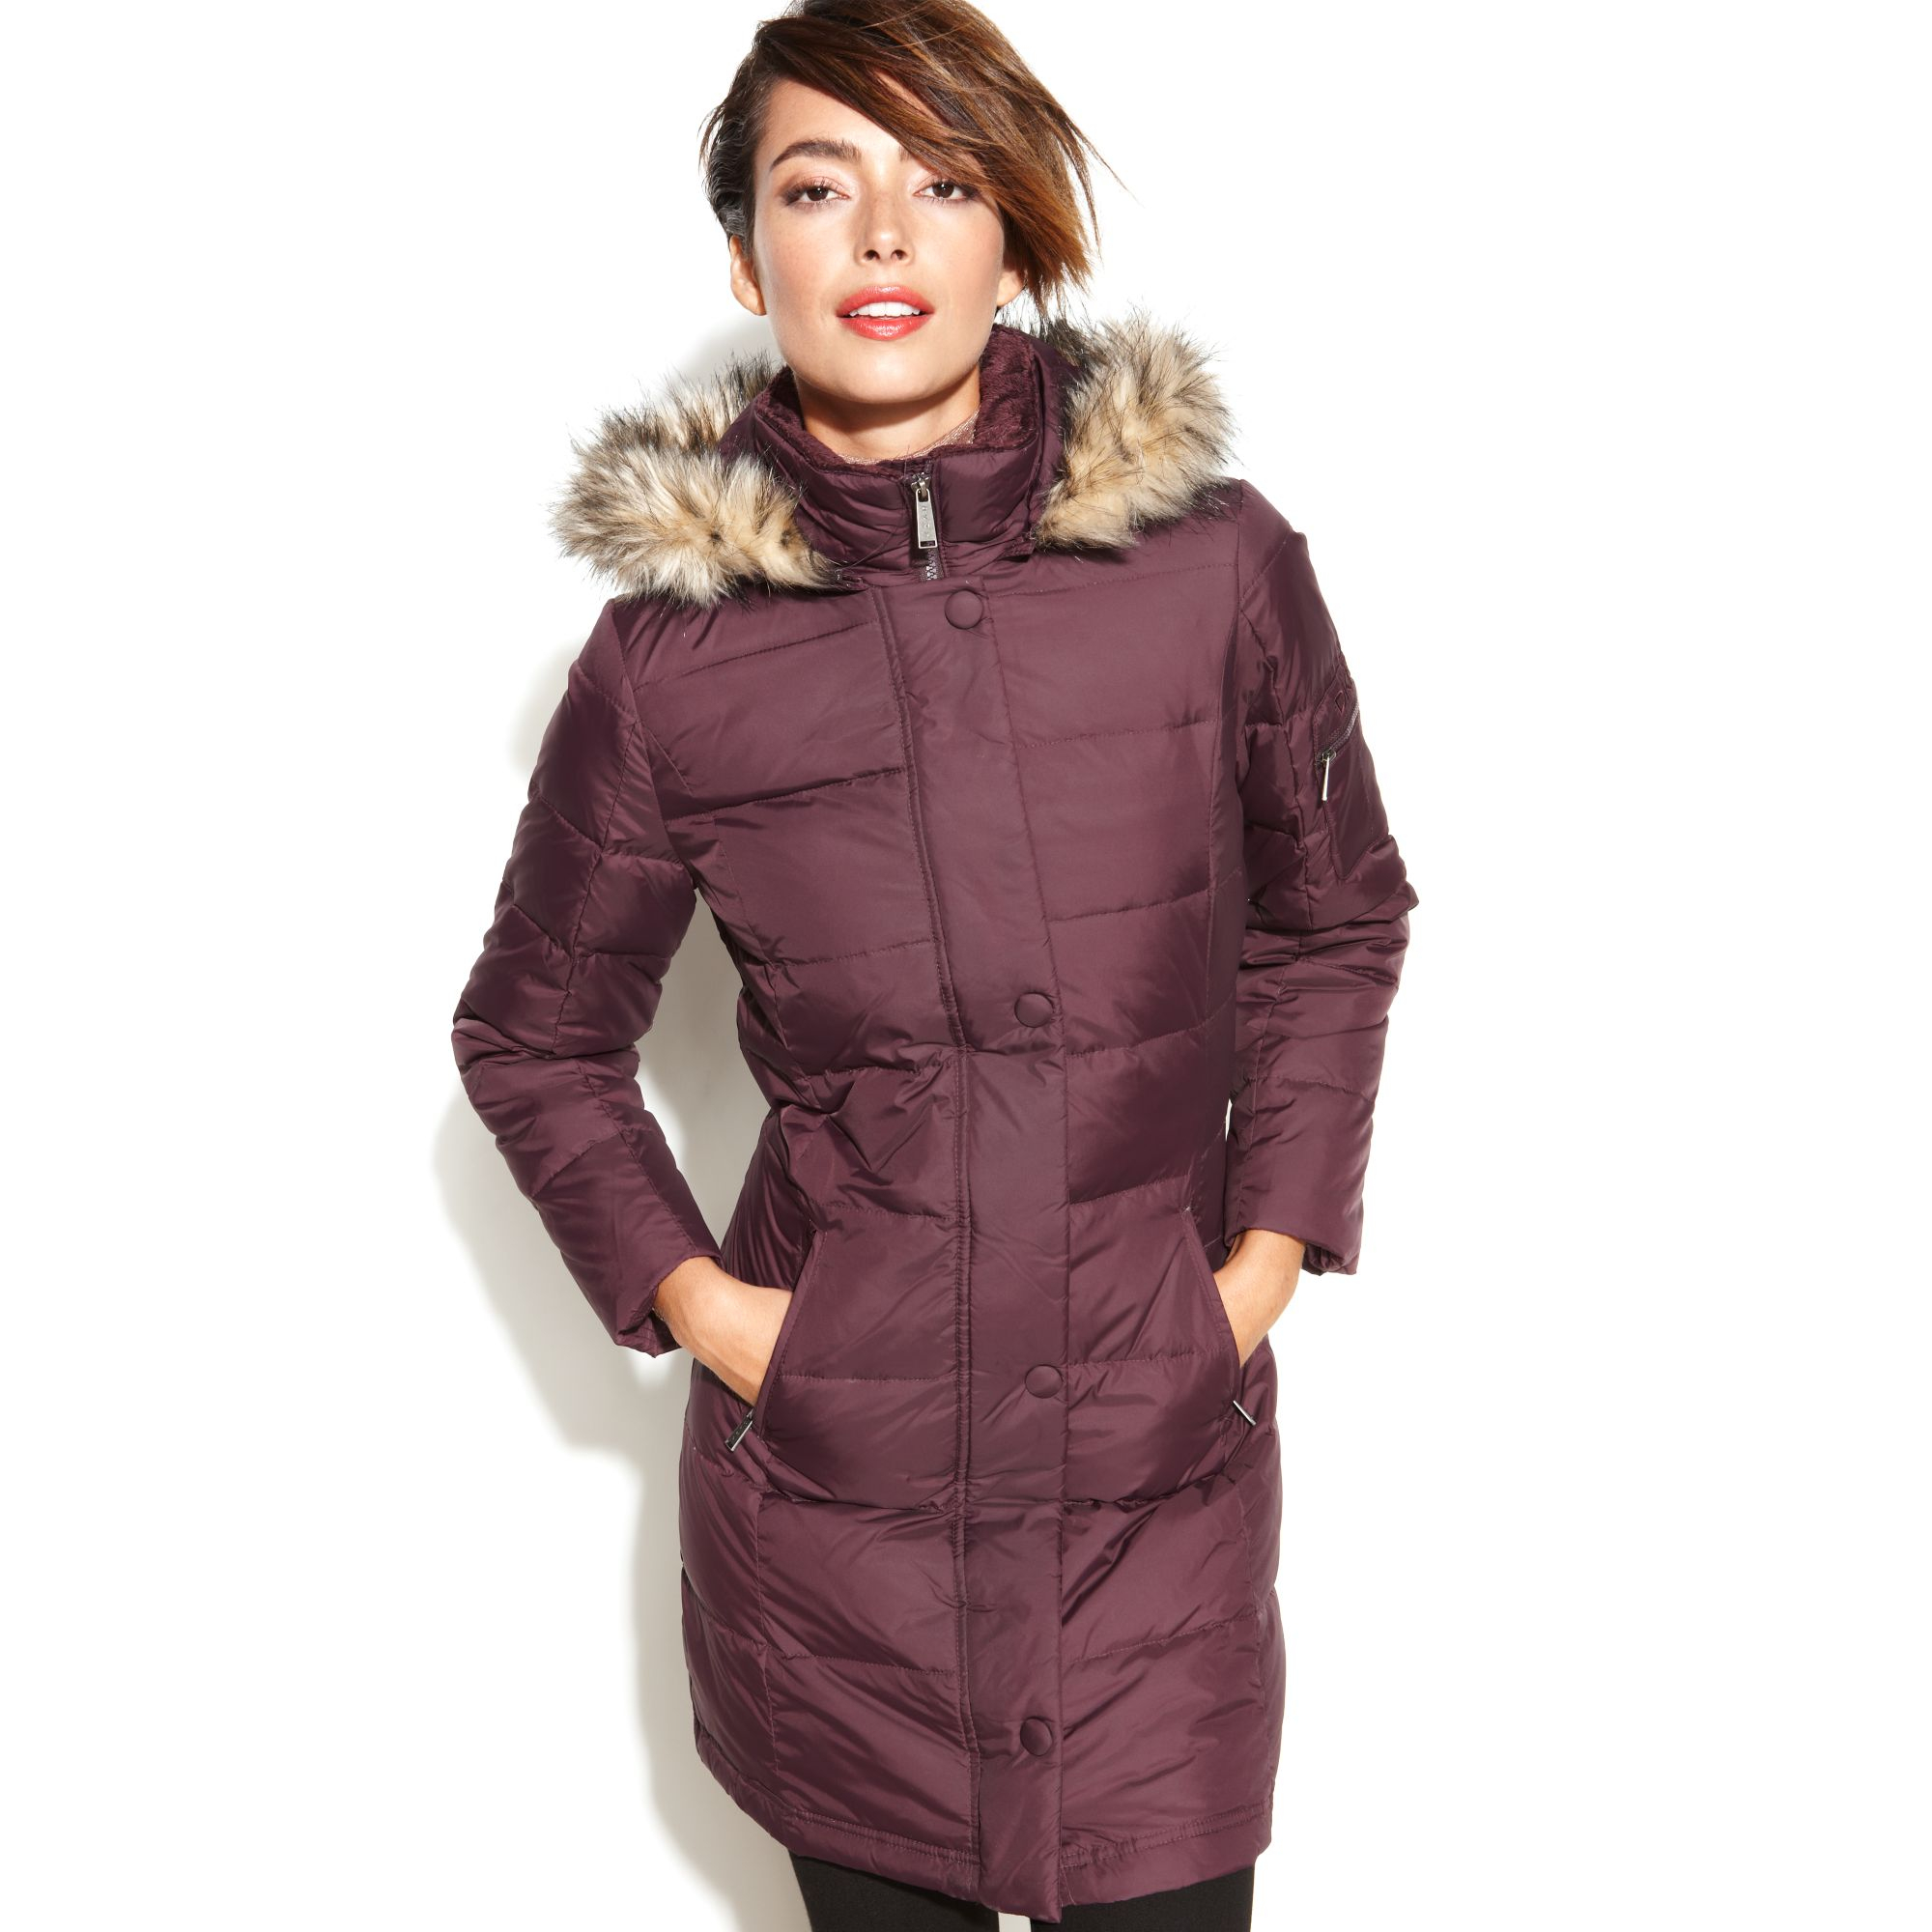 Find a great selection of down & puffer jackets for women at getessay2016.tk Shop from top brands like Patagonia, The North Face, Canada Goose & more. Free shipping & returns.